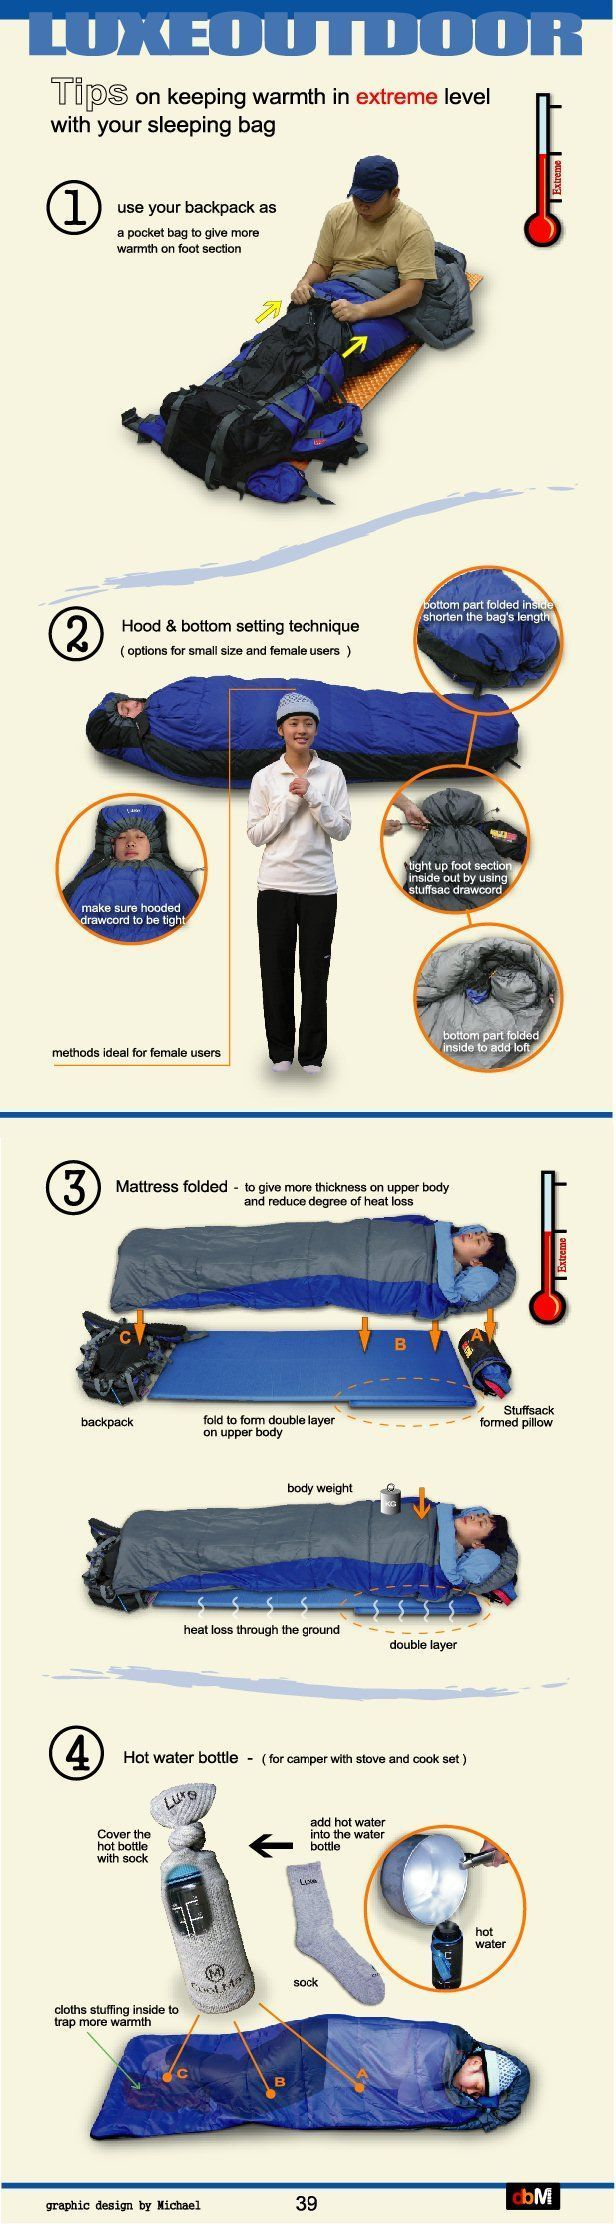 Tips on keeping warmth at night when you go camping.